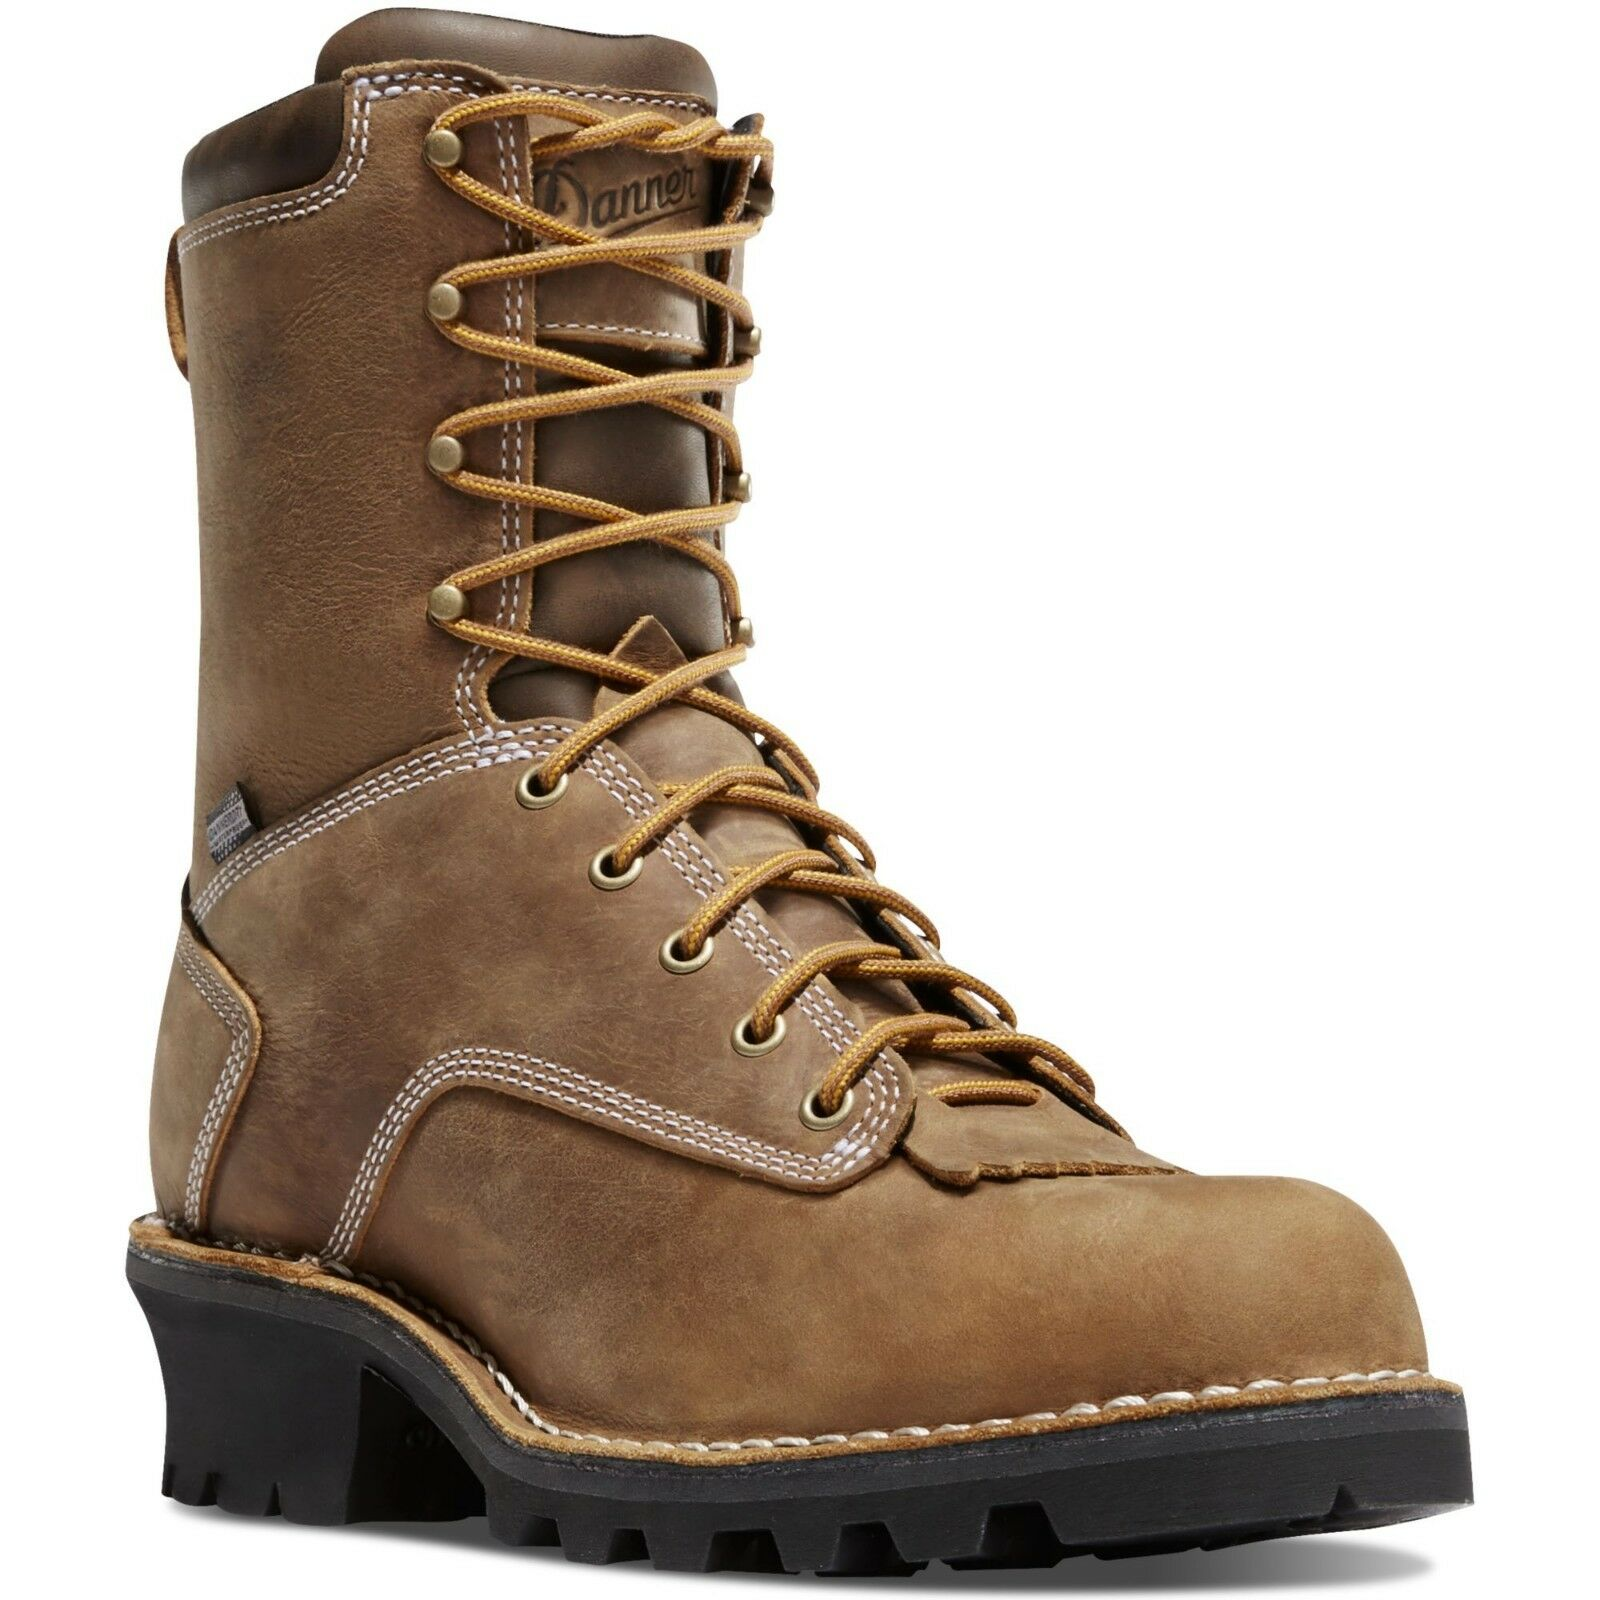 Danner Men's 15435 Logger 8  Brown Insulated 400G EH Leather Work Safety Boots